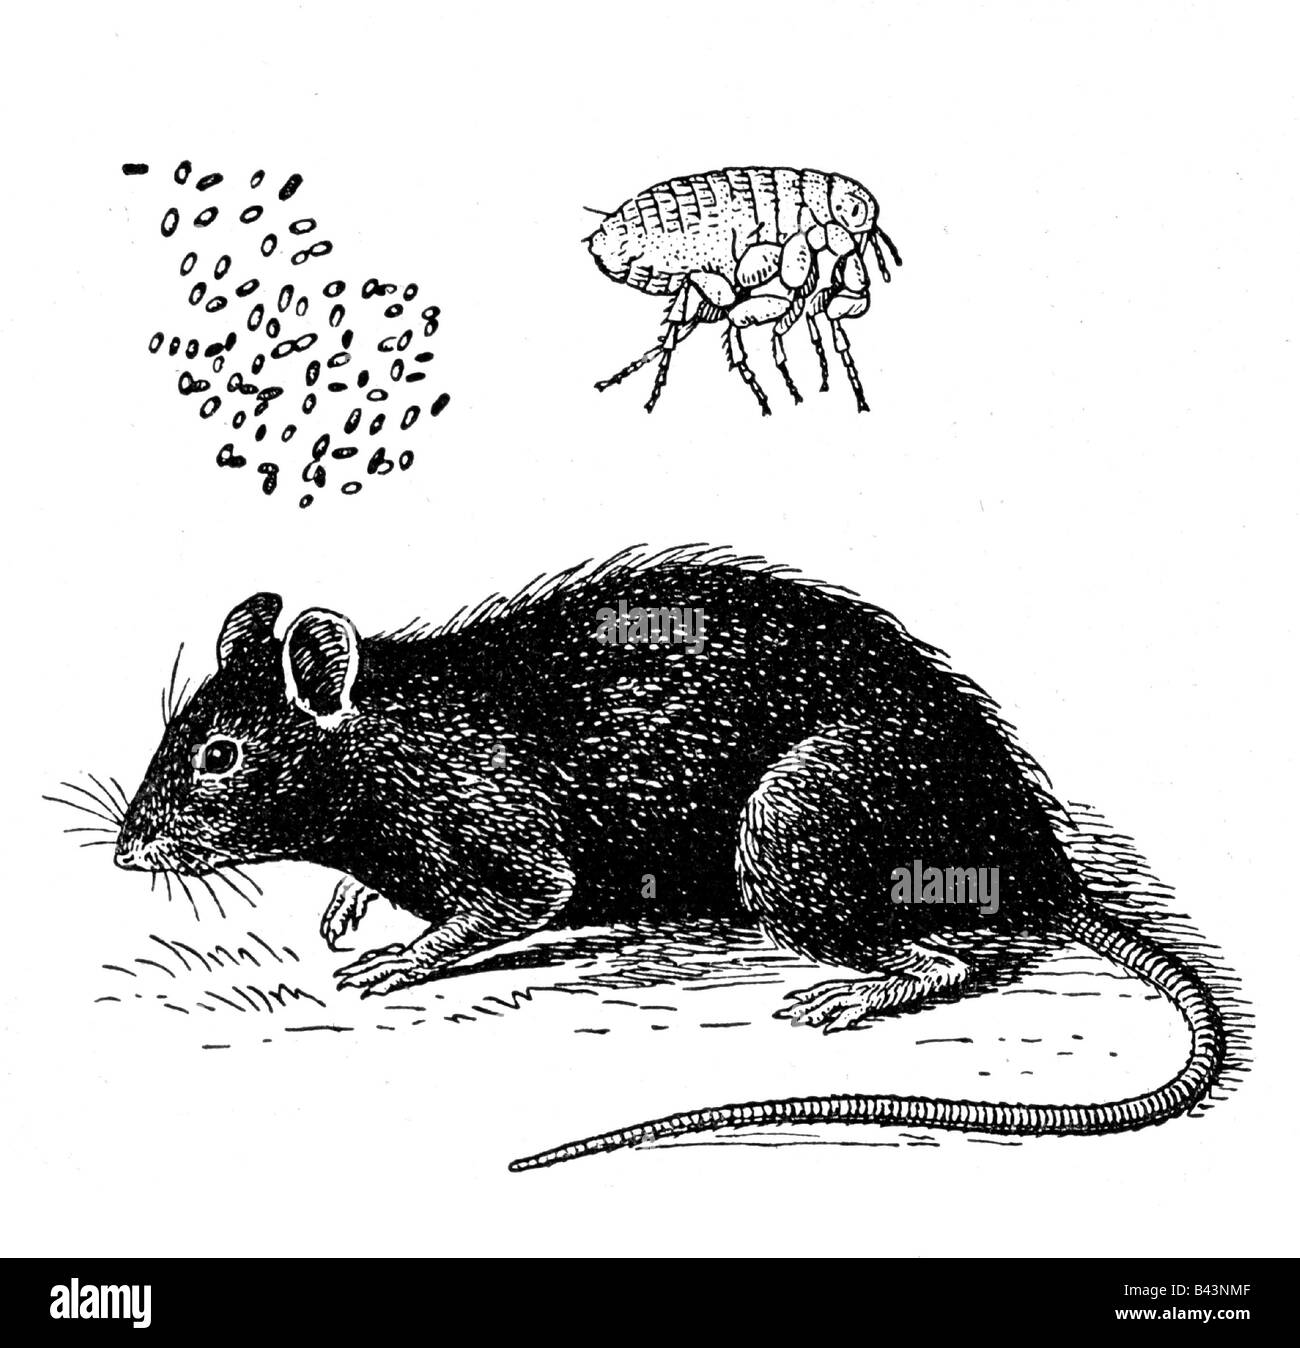 Rat Flea High Resolution Stock Photography And Images Alamy